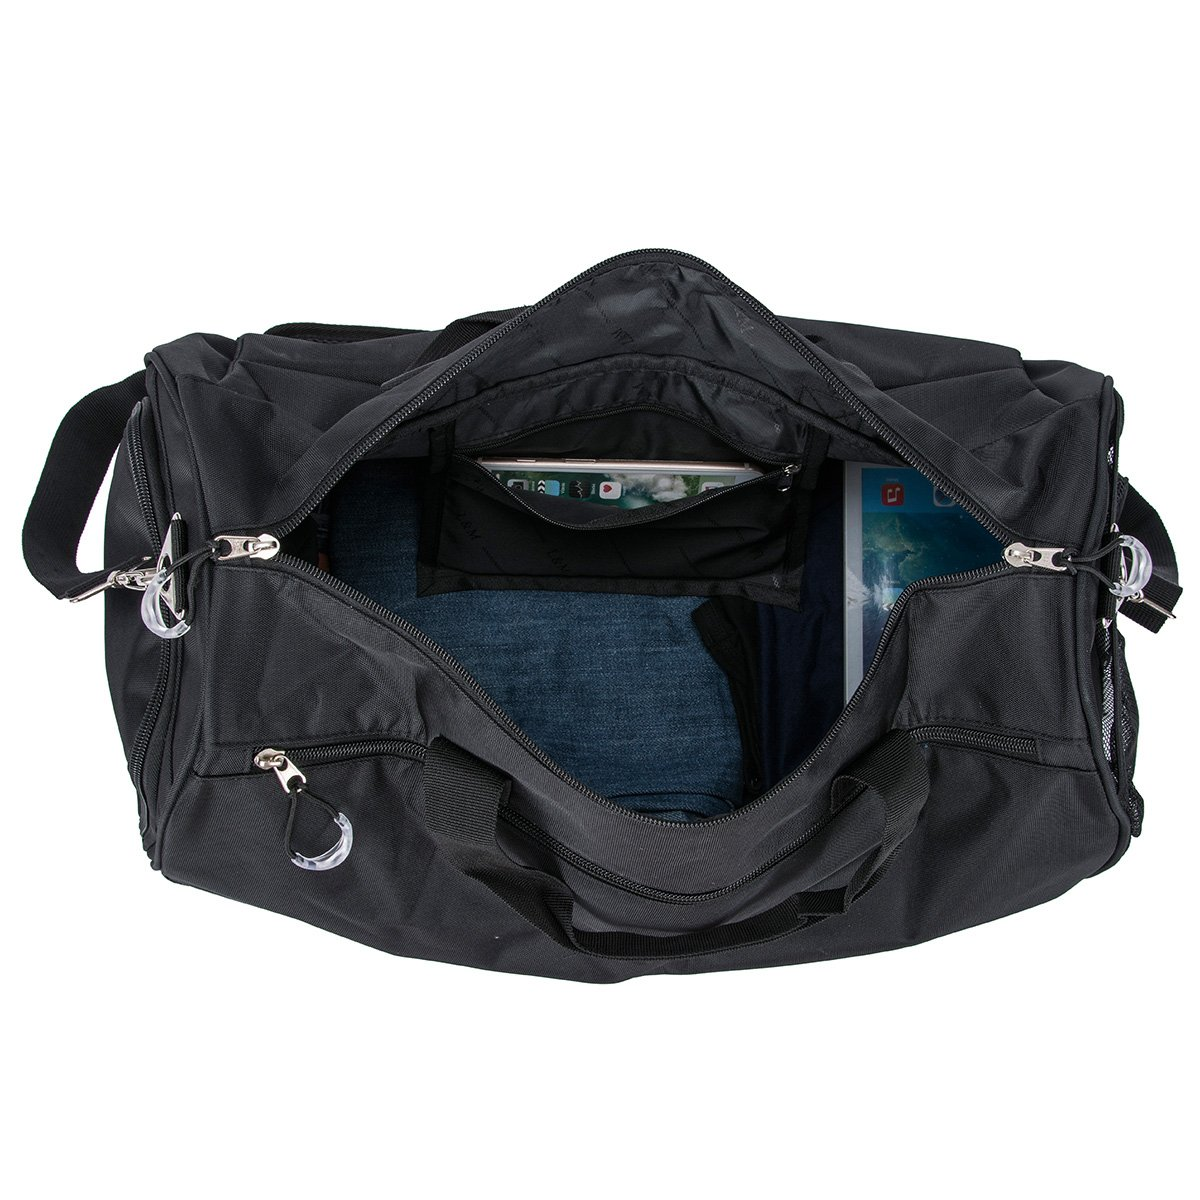 Amazon.com  Kuston Sports Gym Bag with Shoes Compartment Travel Duffel Bag  for Men and Women  Sports   Outdoors 91f4db70f100c